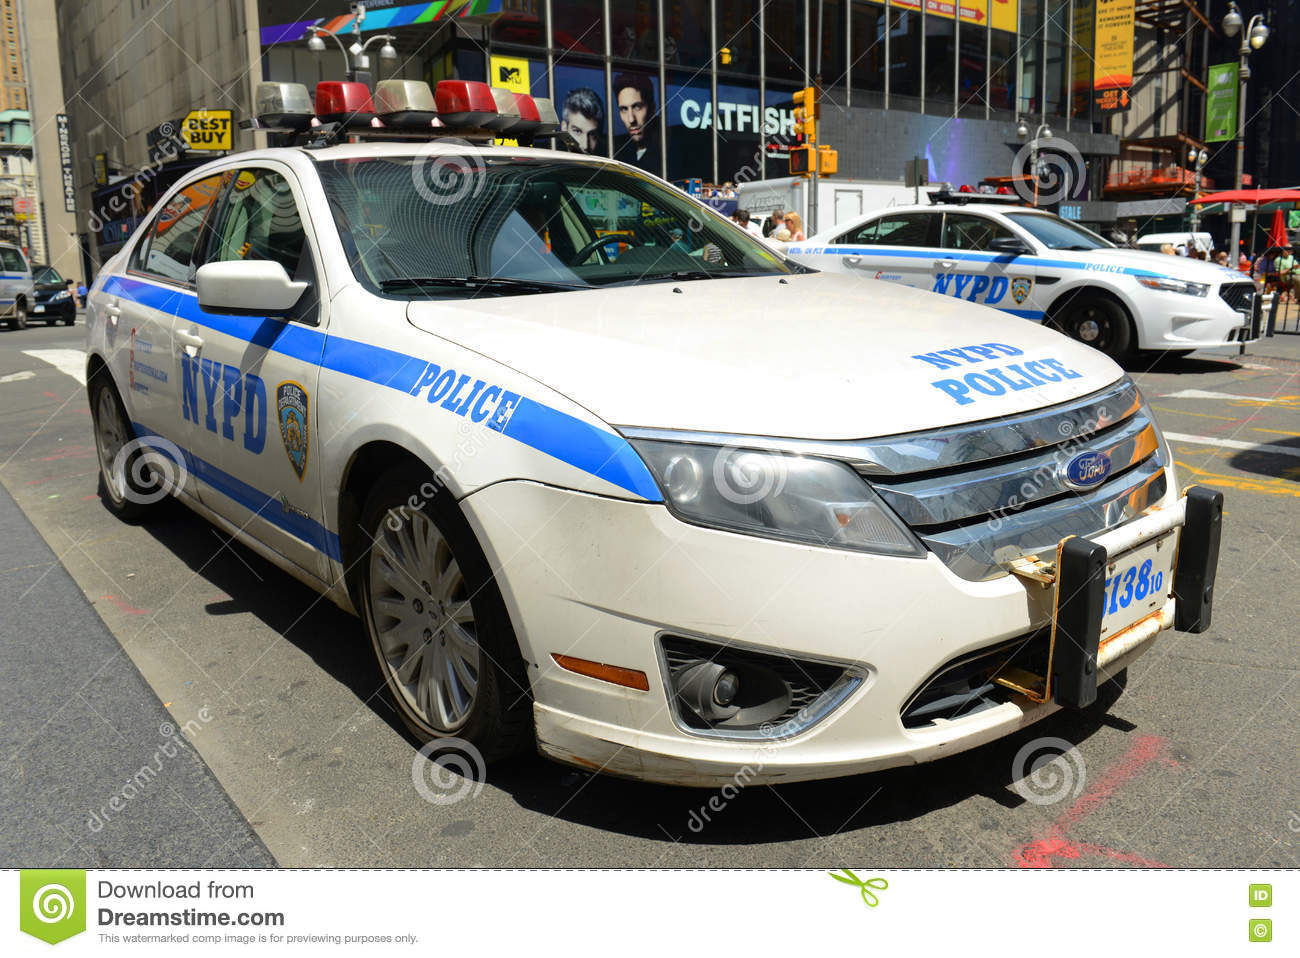 NYPD Ford Fusion Hybrid Police Car dans NYC